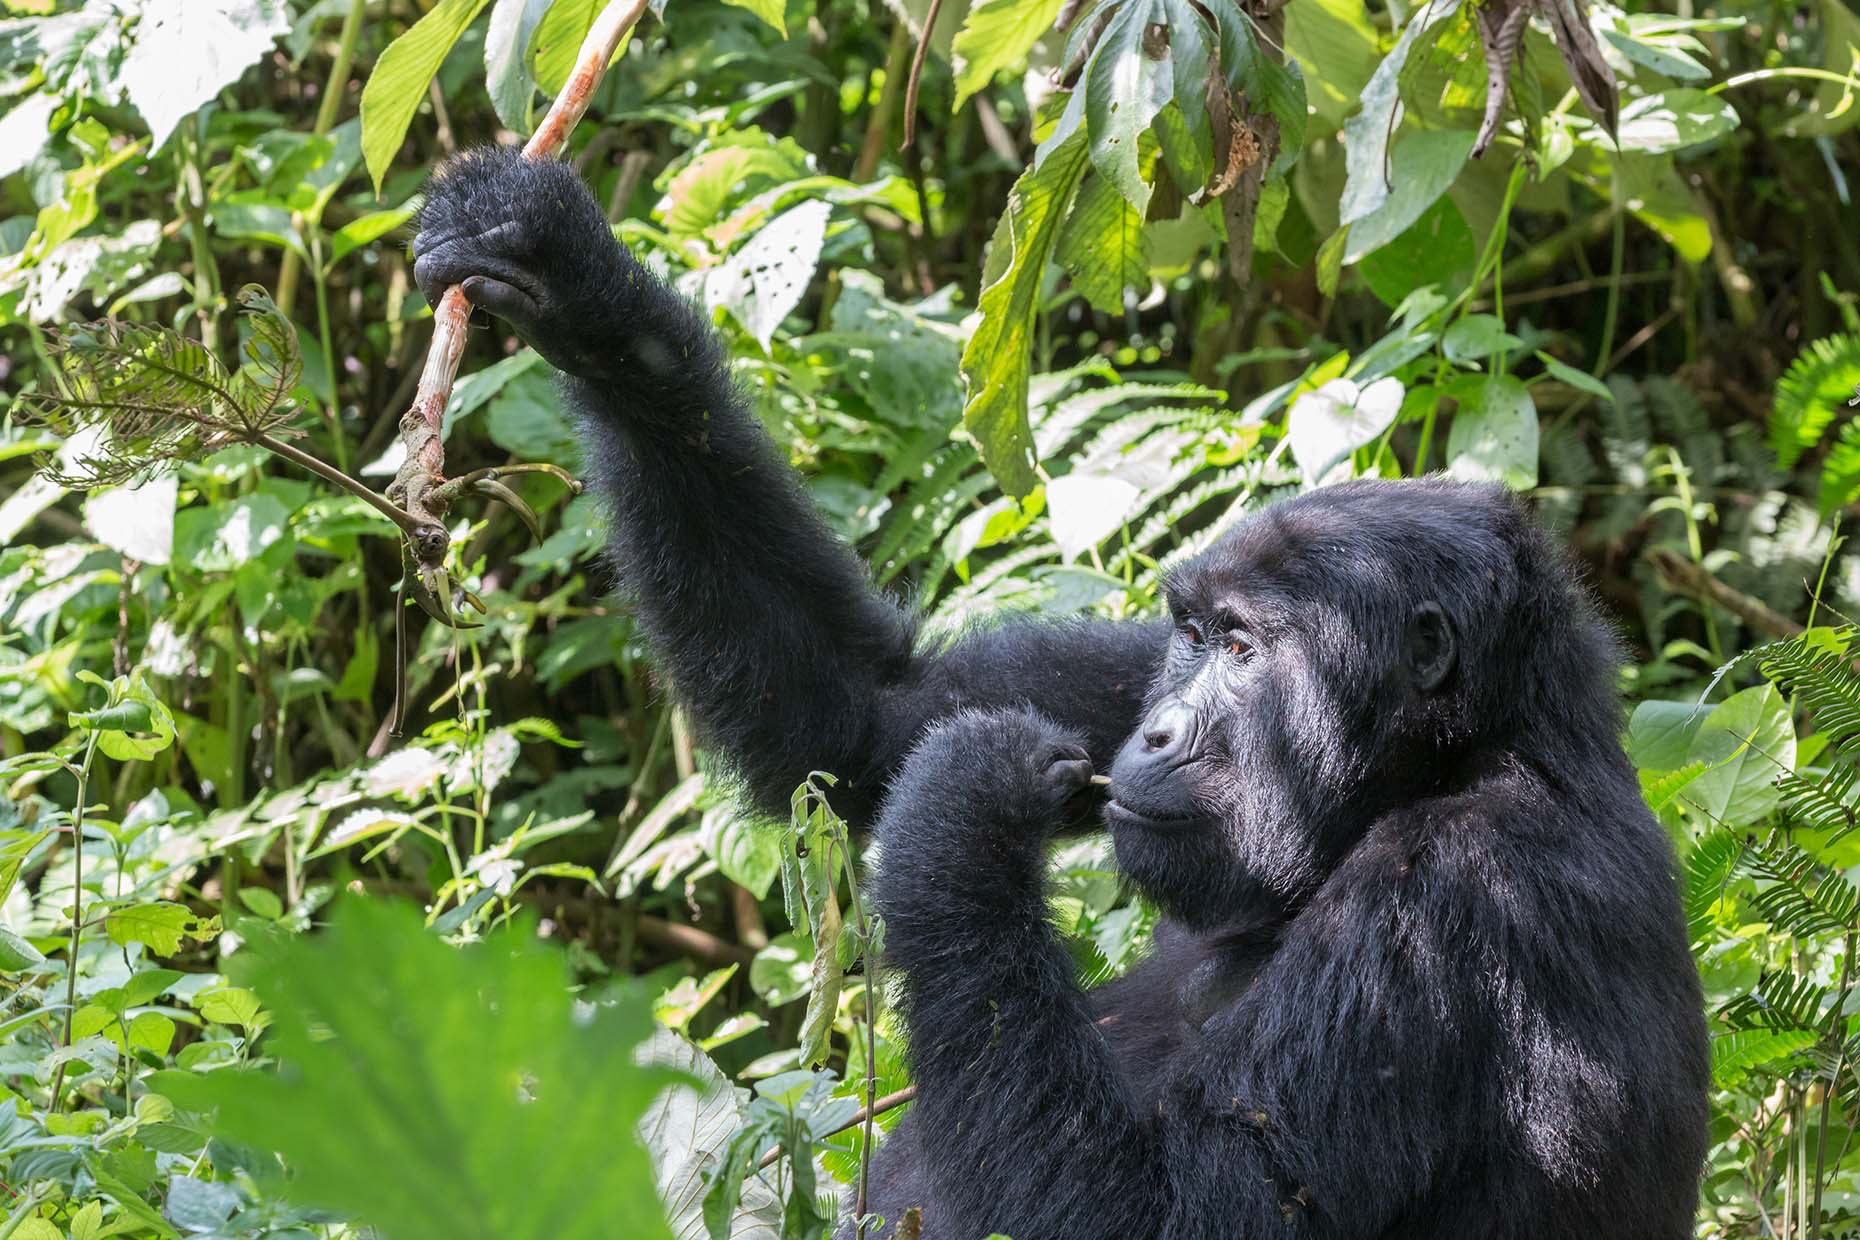 Gorilla eating in the forest